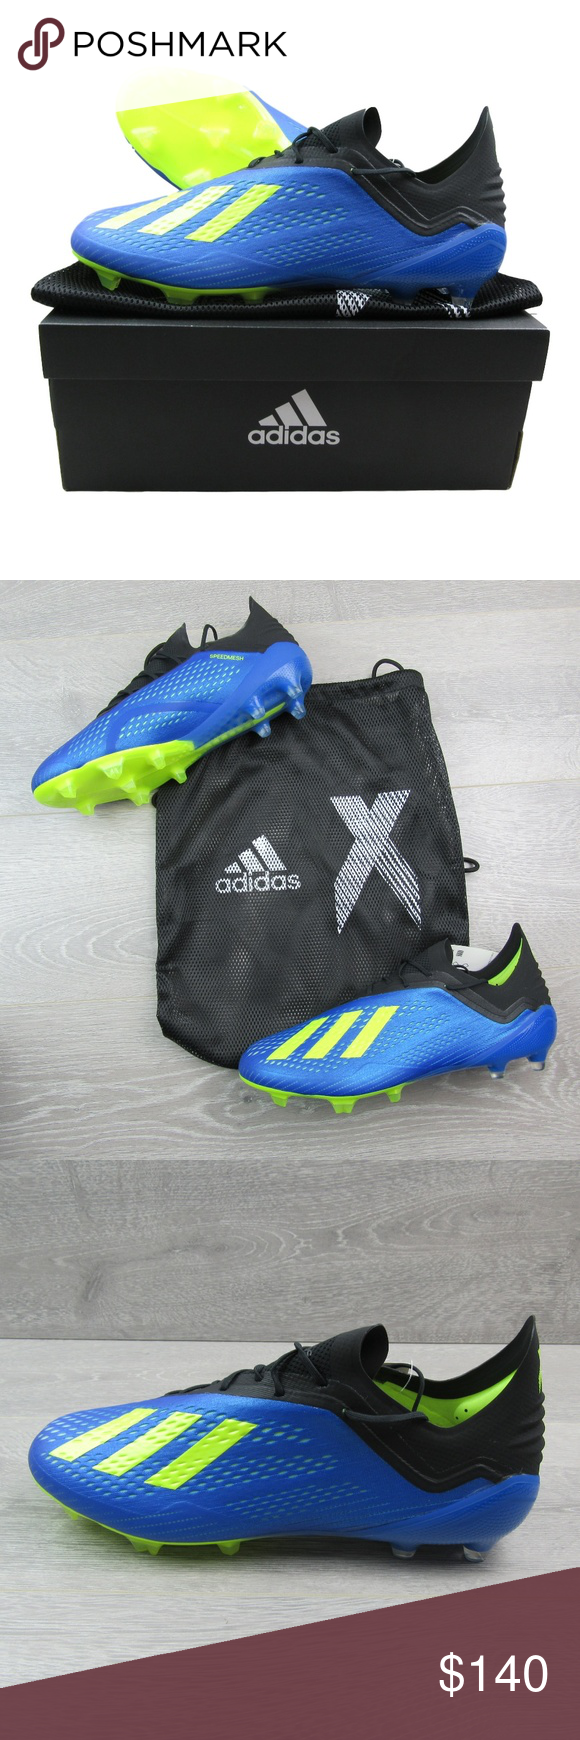 6d6398900 Adidas X 18.1 FG Soccer Cleats Blue Solar Yellow PLEASE NO OFFERS PRICE IS  FIRM Adidas